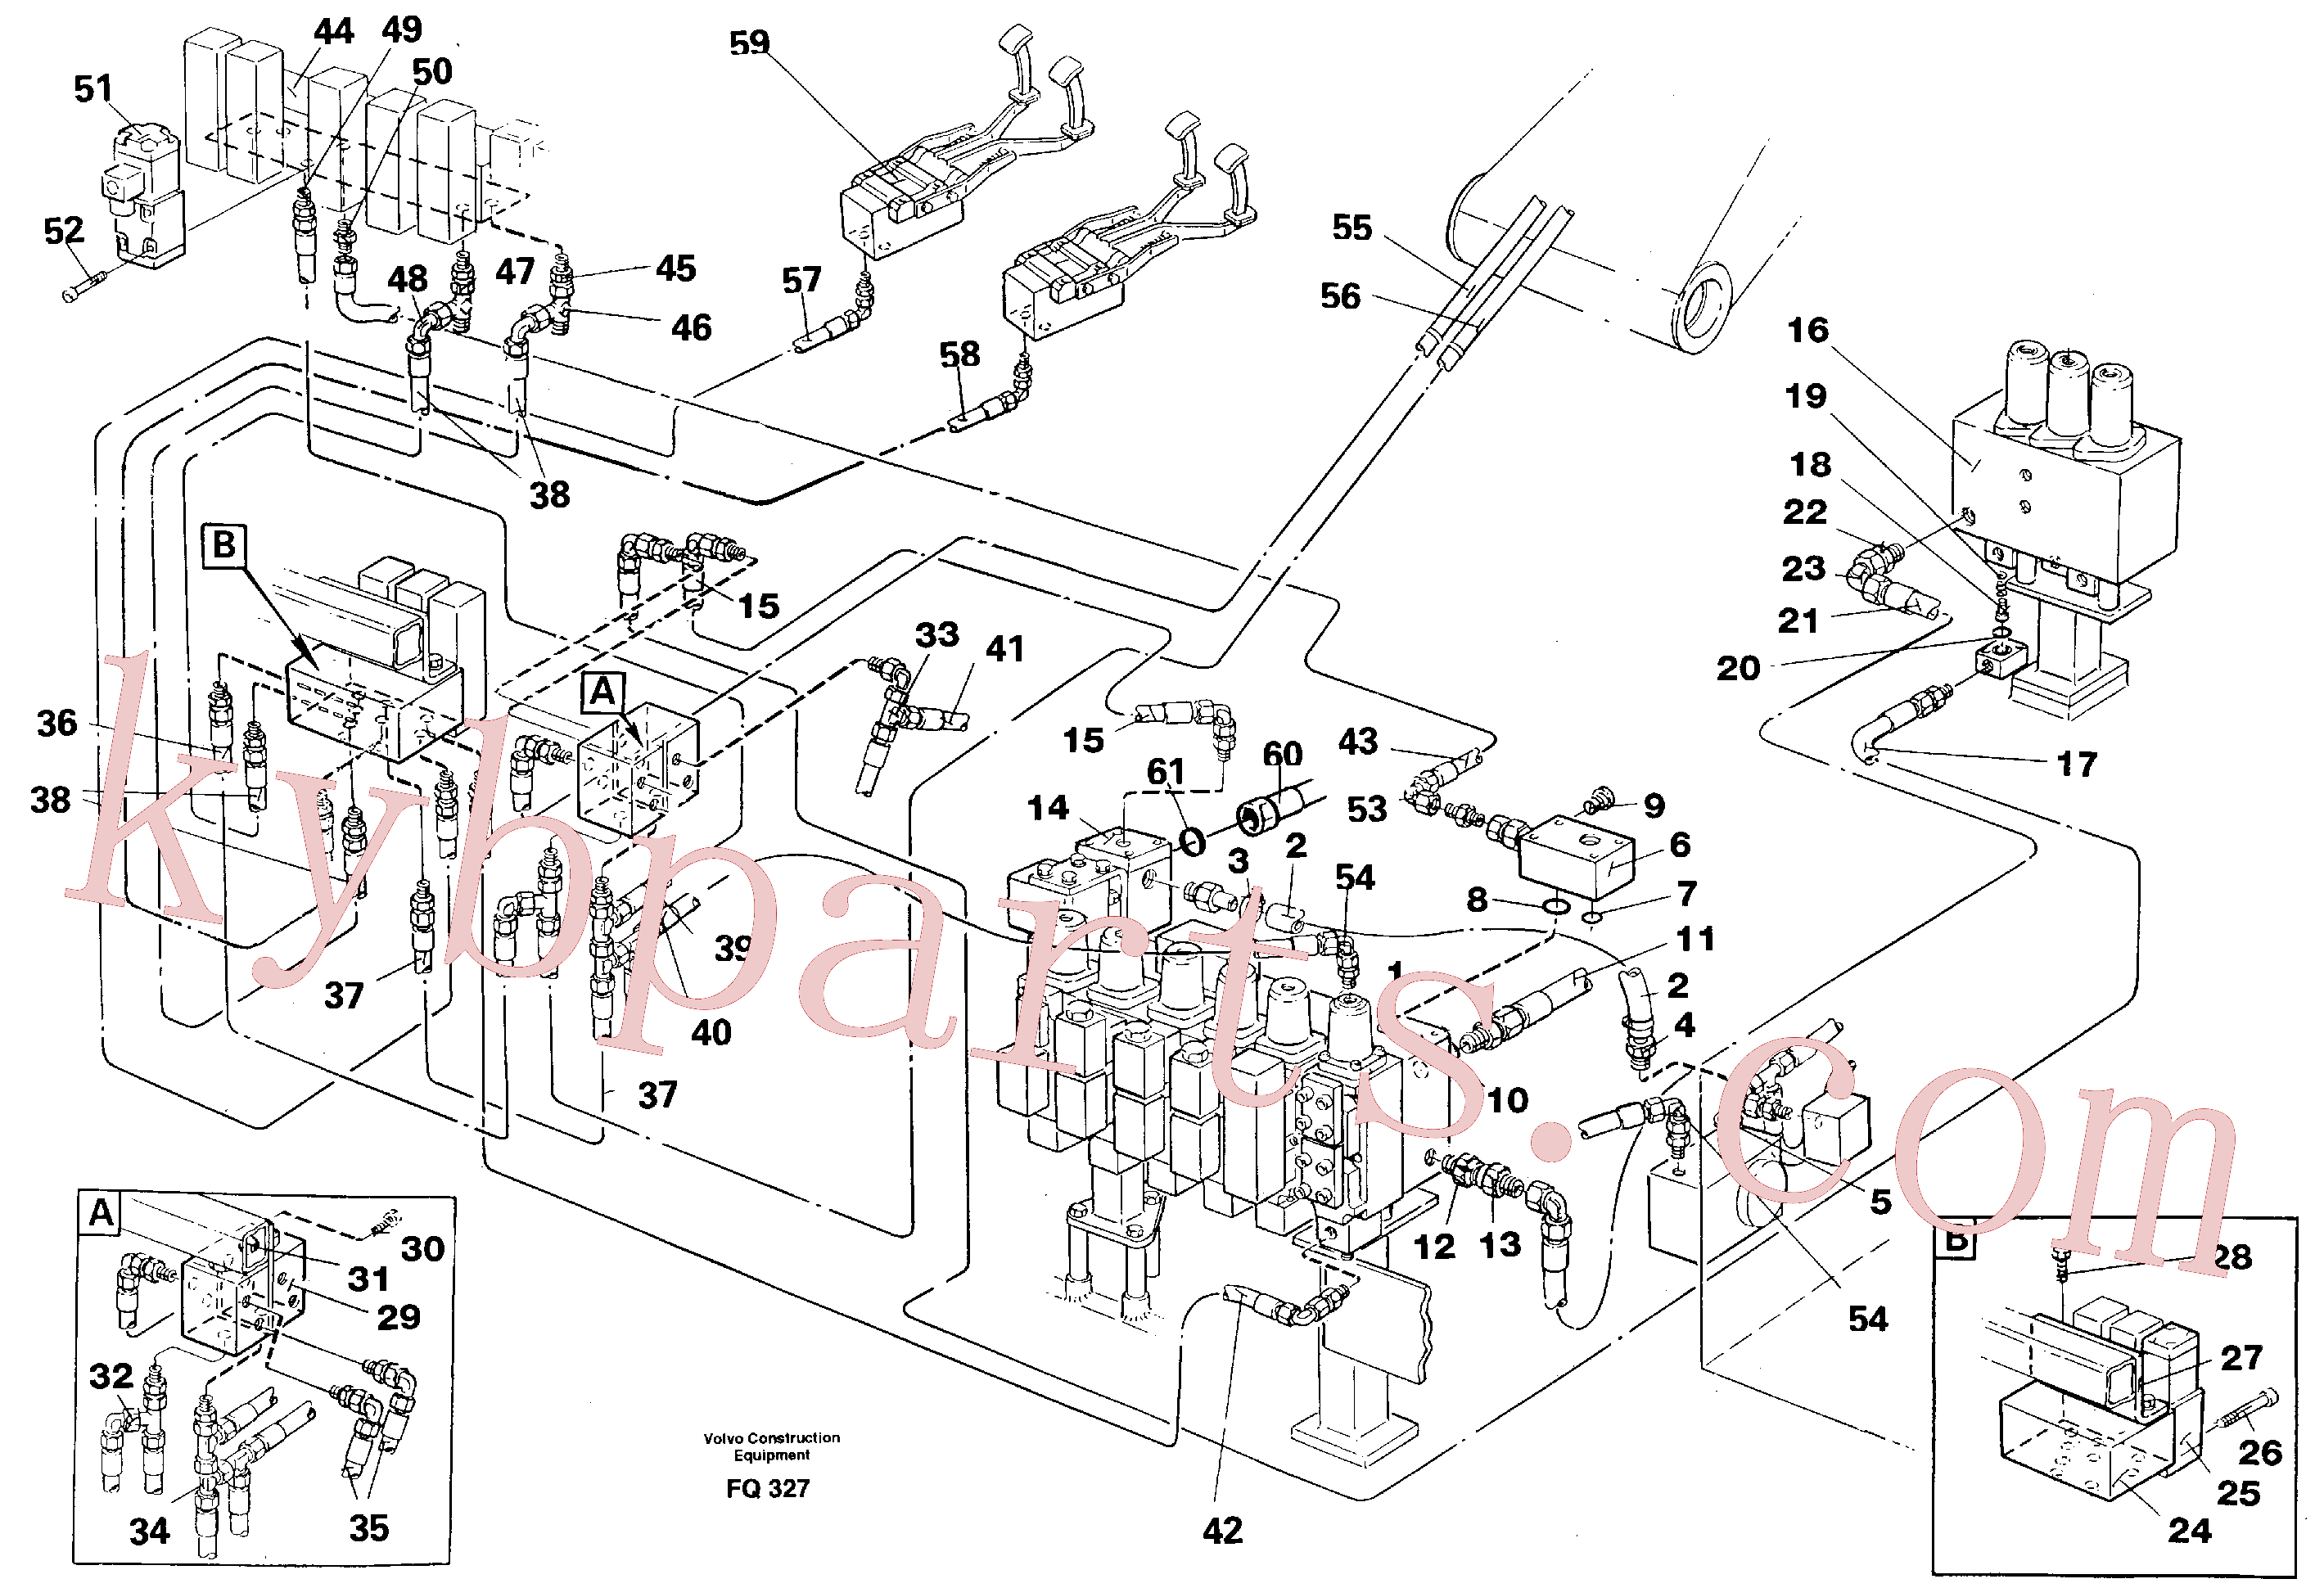 VOE14251114 for Volvo Hydraulic equipment for shears on adjustable boomin base machine(FQ327 assembly)